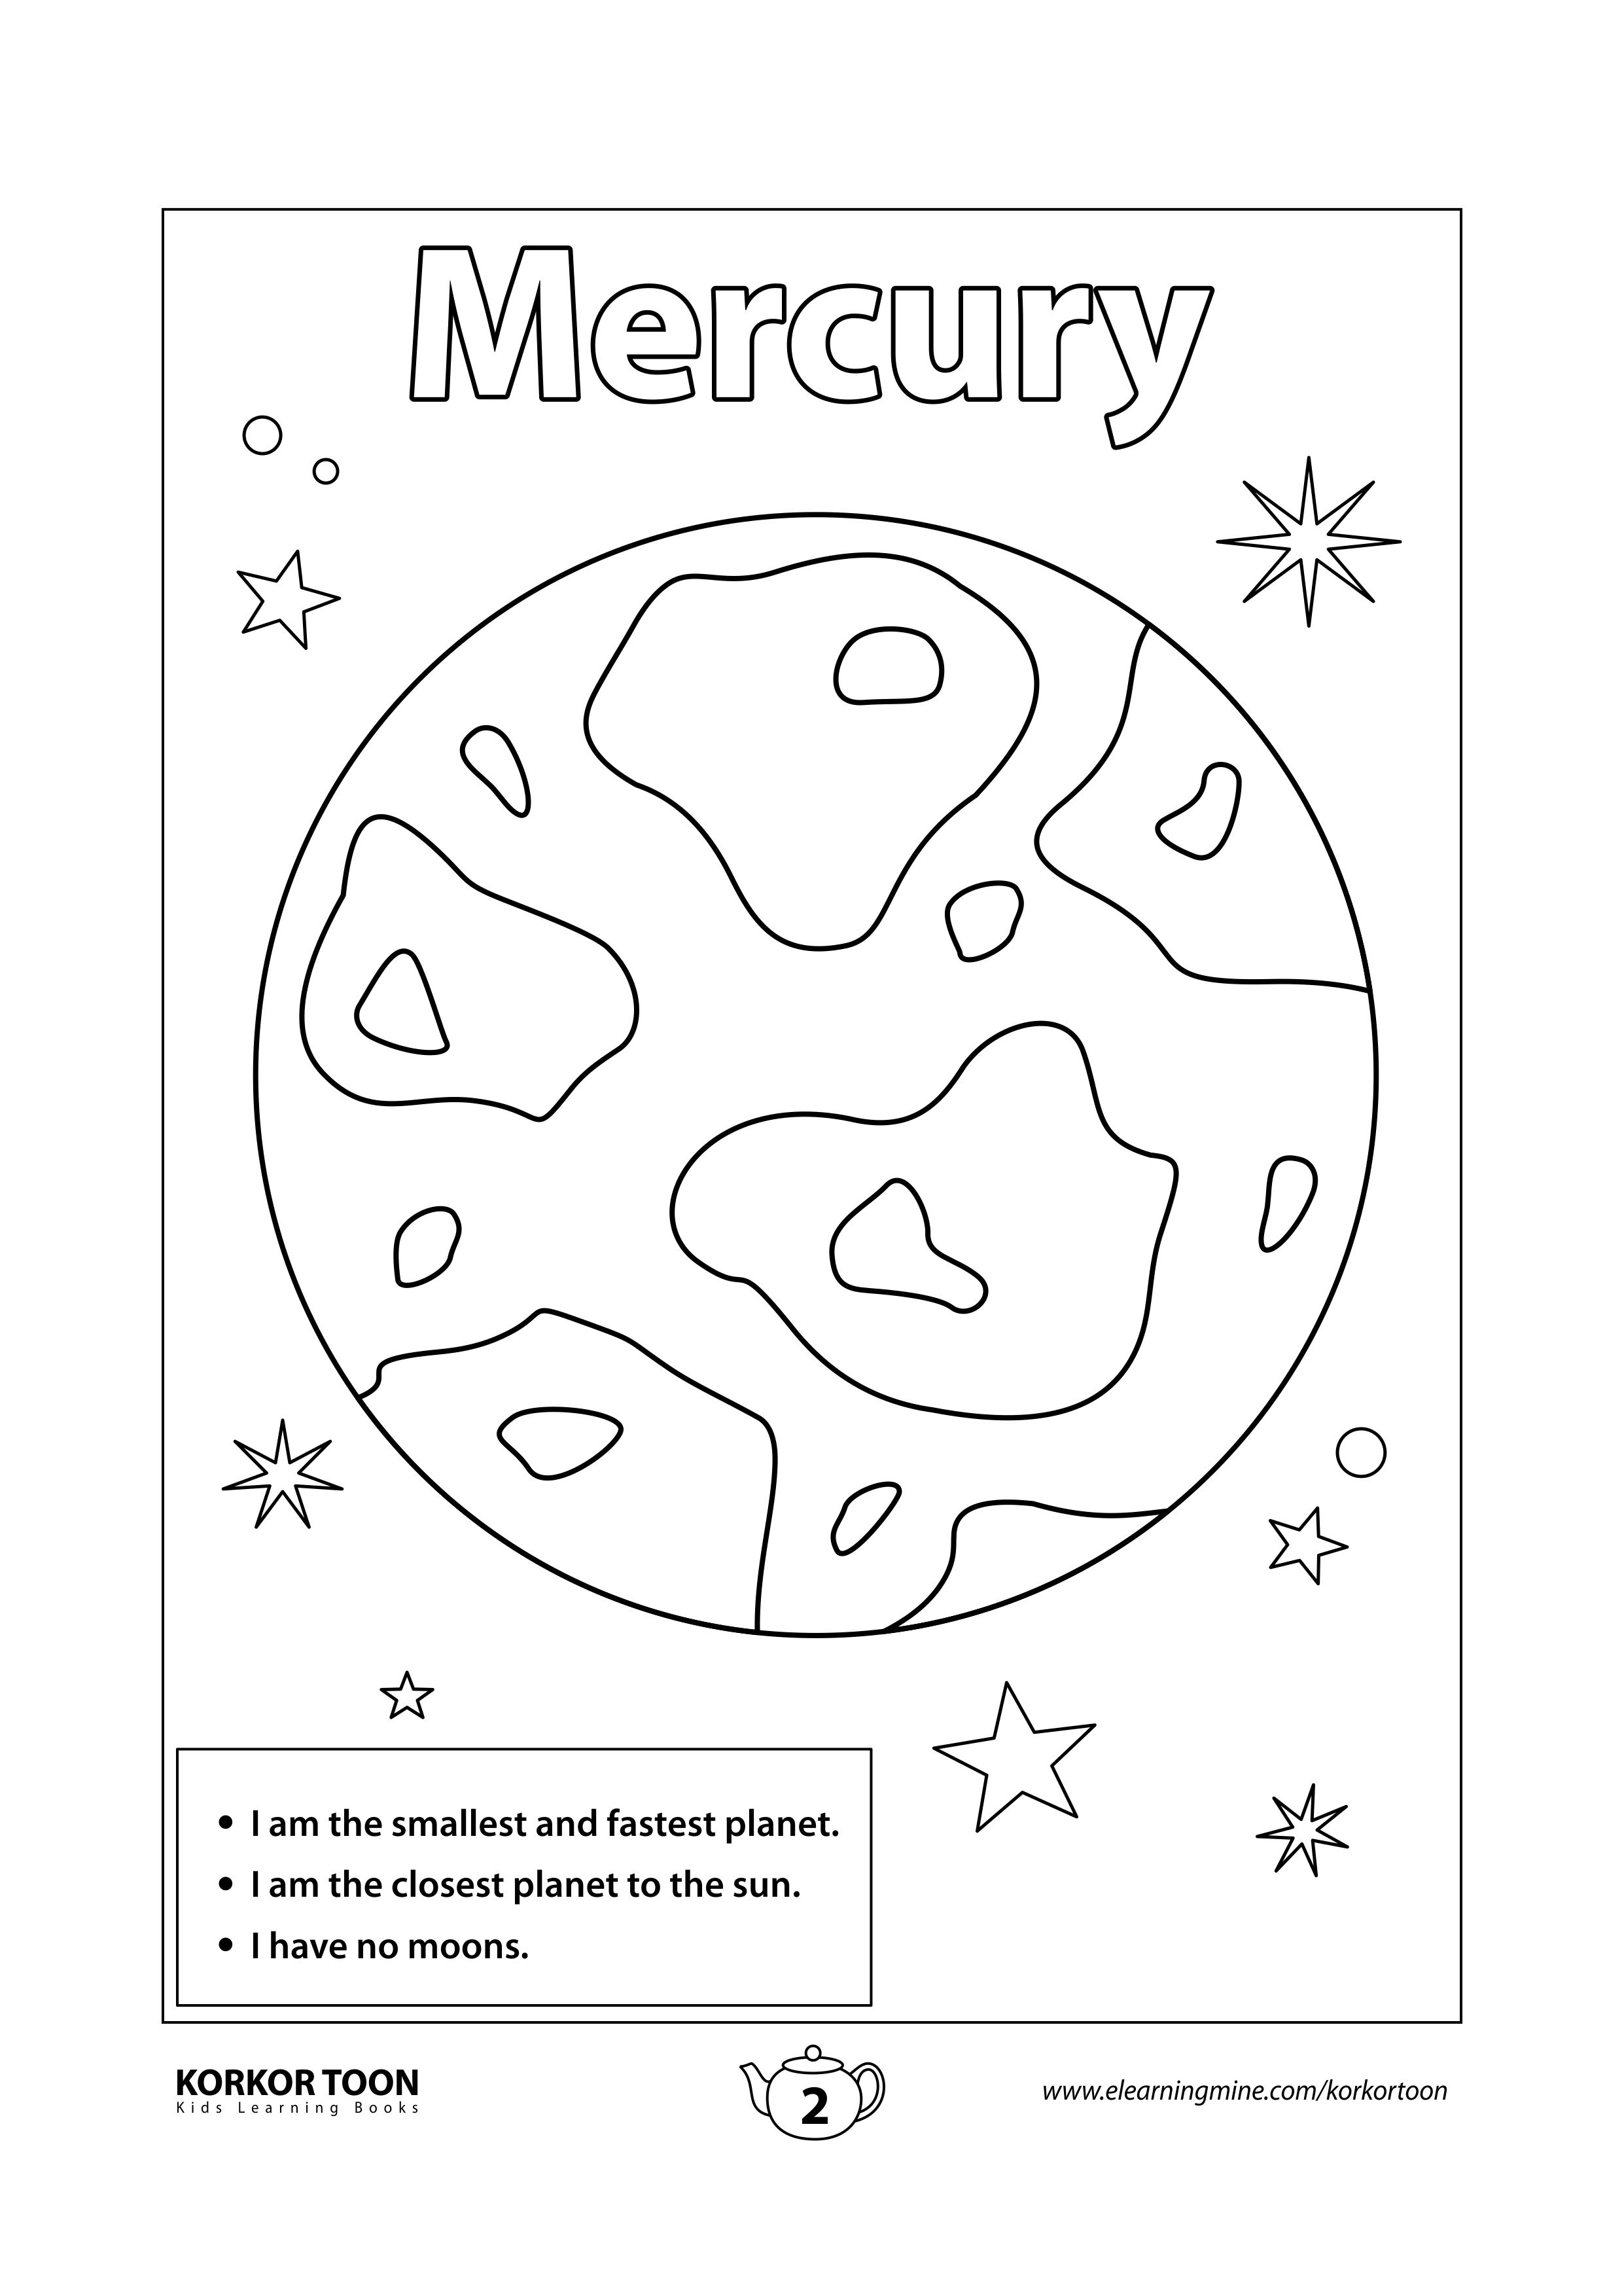 Solar System Coloring Book For Kids Mercury Page 2 Coloring Books Kids Coloring Books Coloring Pages For Kids [ 3508 x 2482 Pixel ]